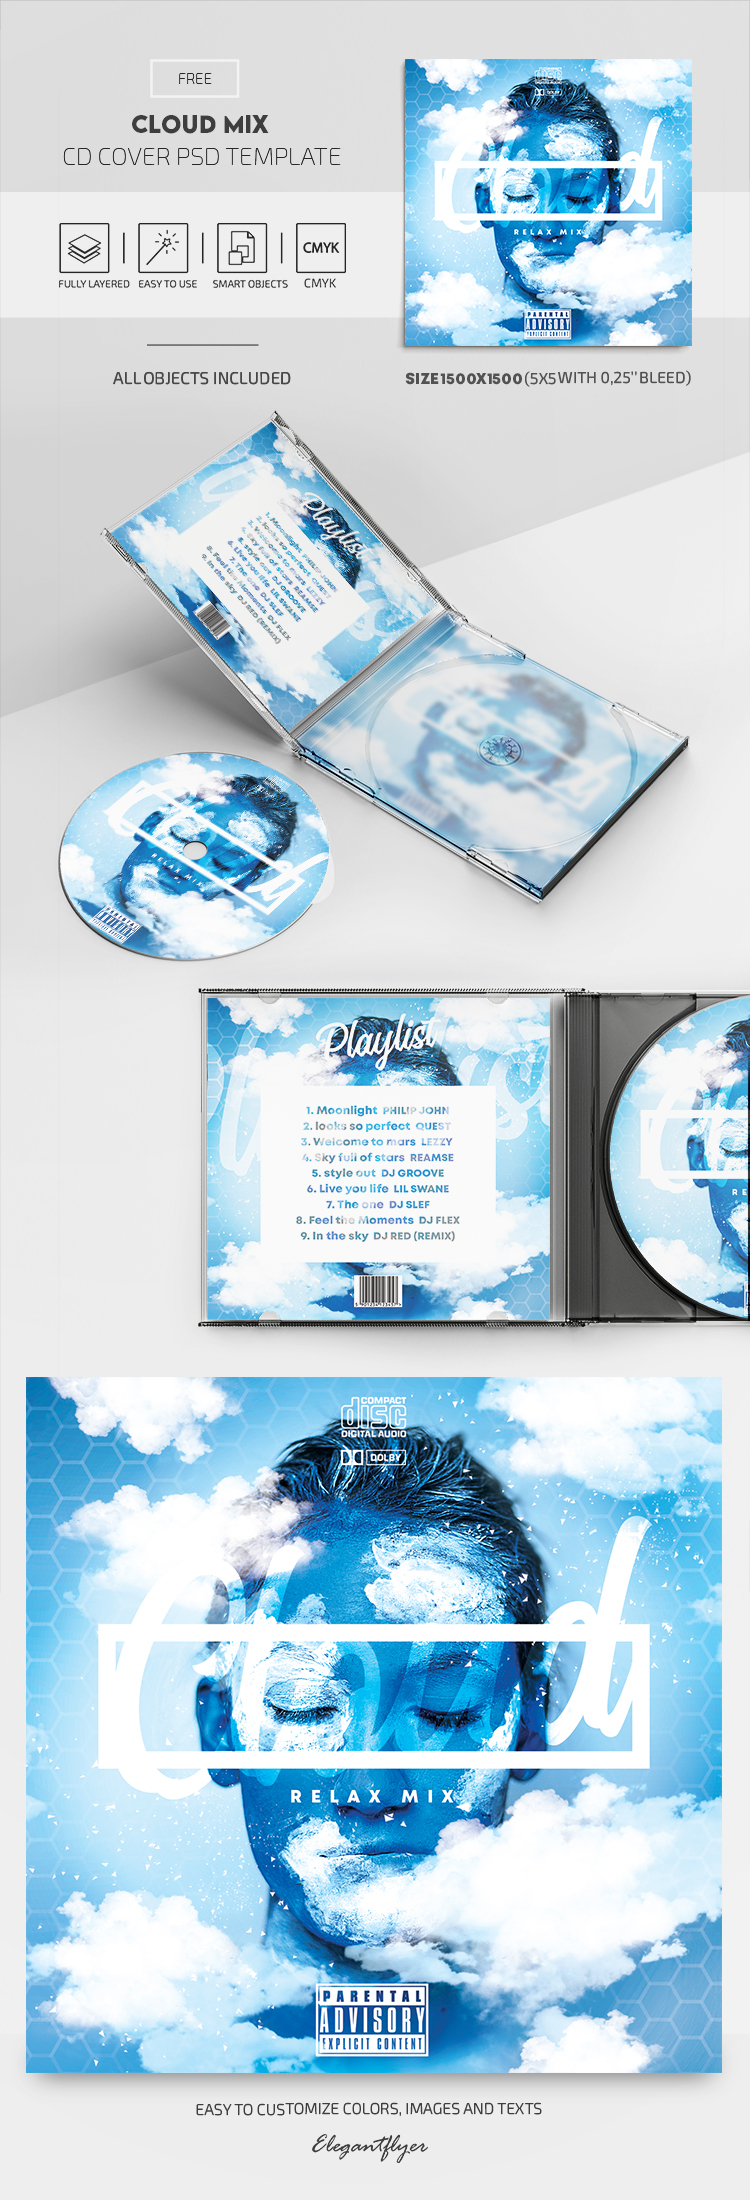 Cloud Mix – Free CD Cover PSD Template